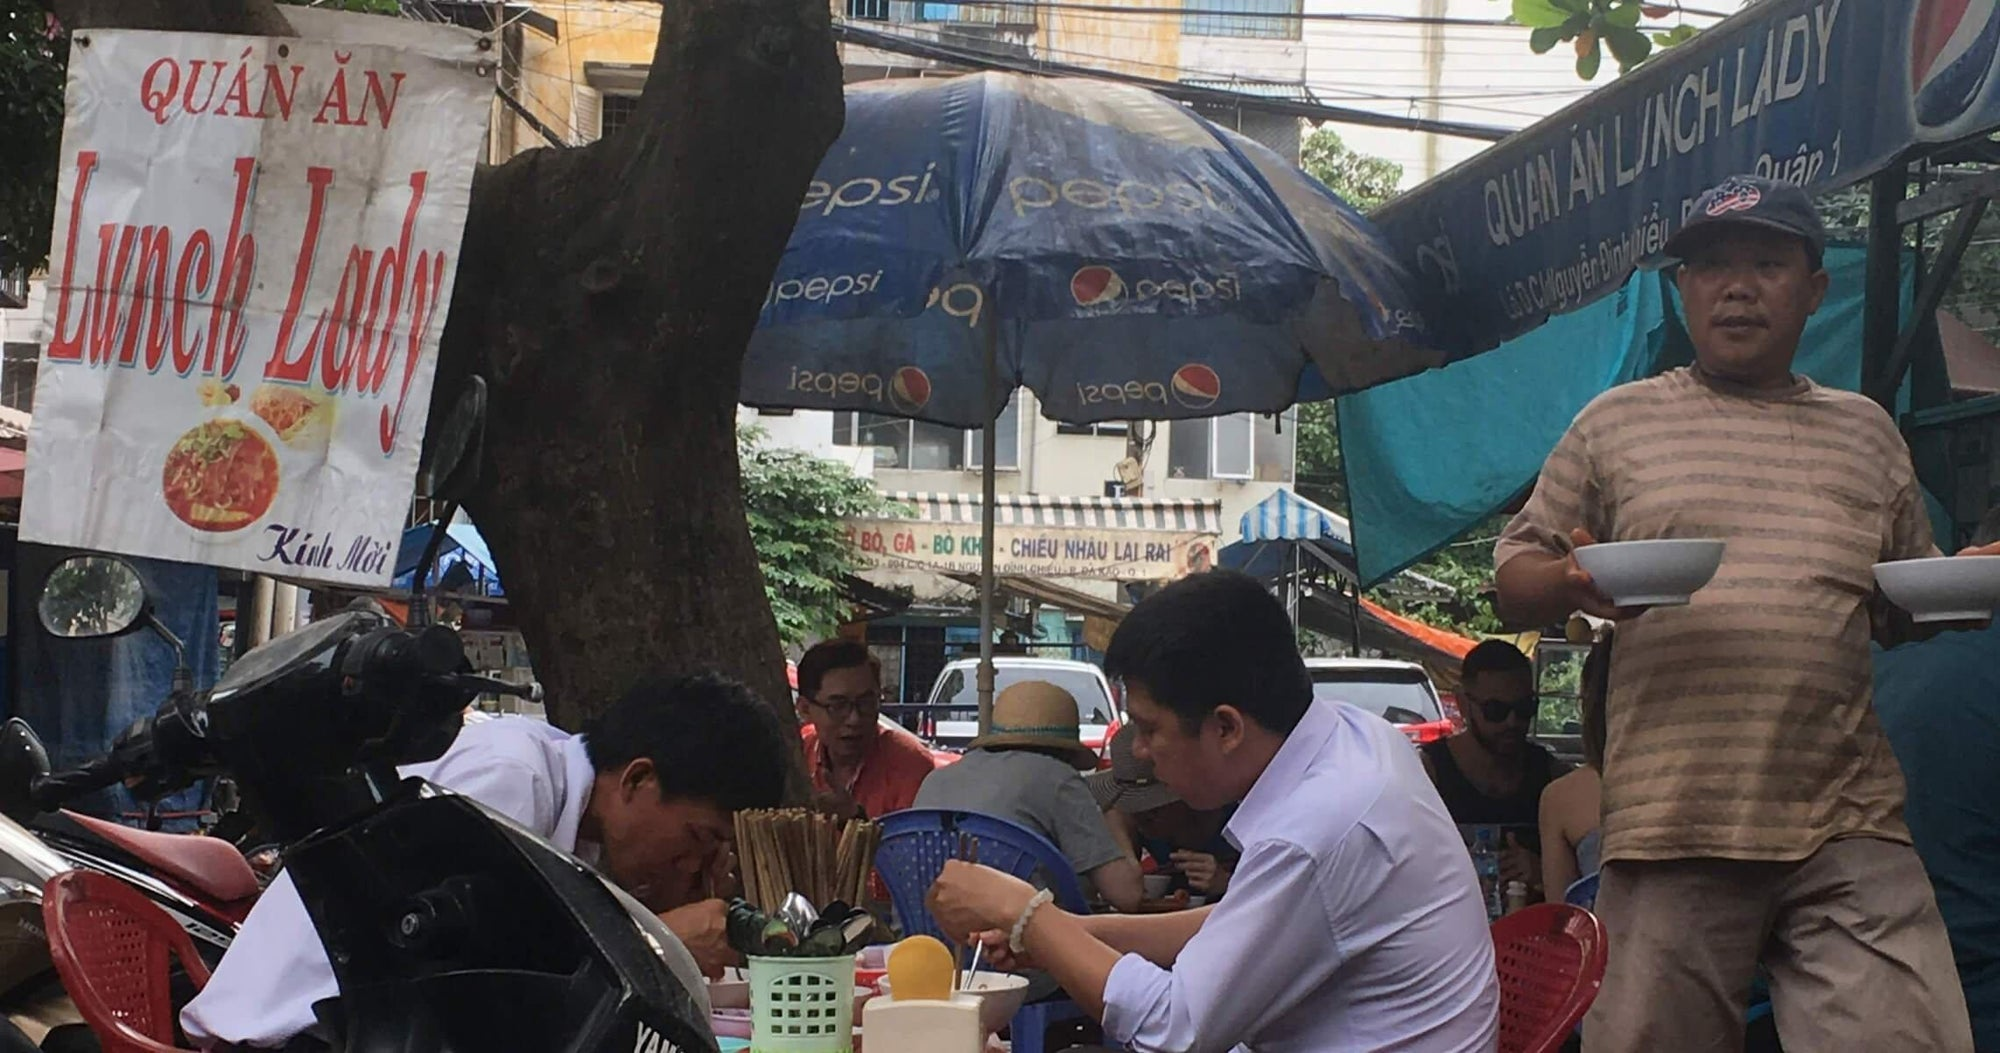 Low Plastic Stools, Delicious Noodles and cold Hanoi Beer - the Anthony Bourdain affect-Temples and Markets